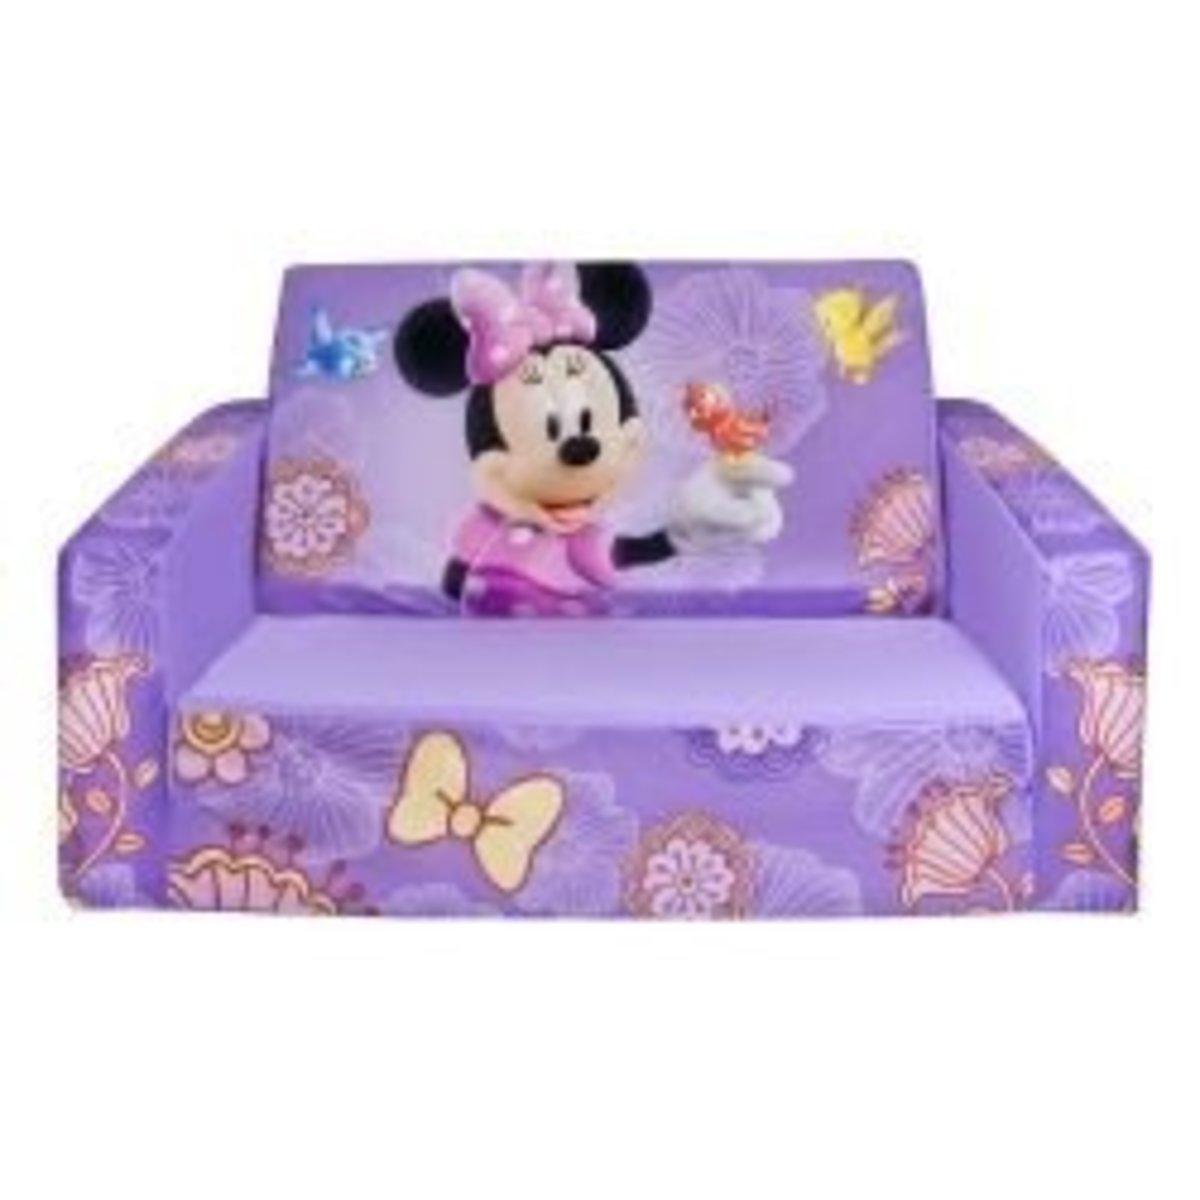 Minnie Mouse Chairs, Couches & Flip Sofas